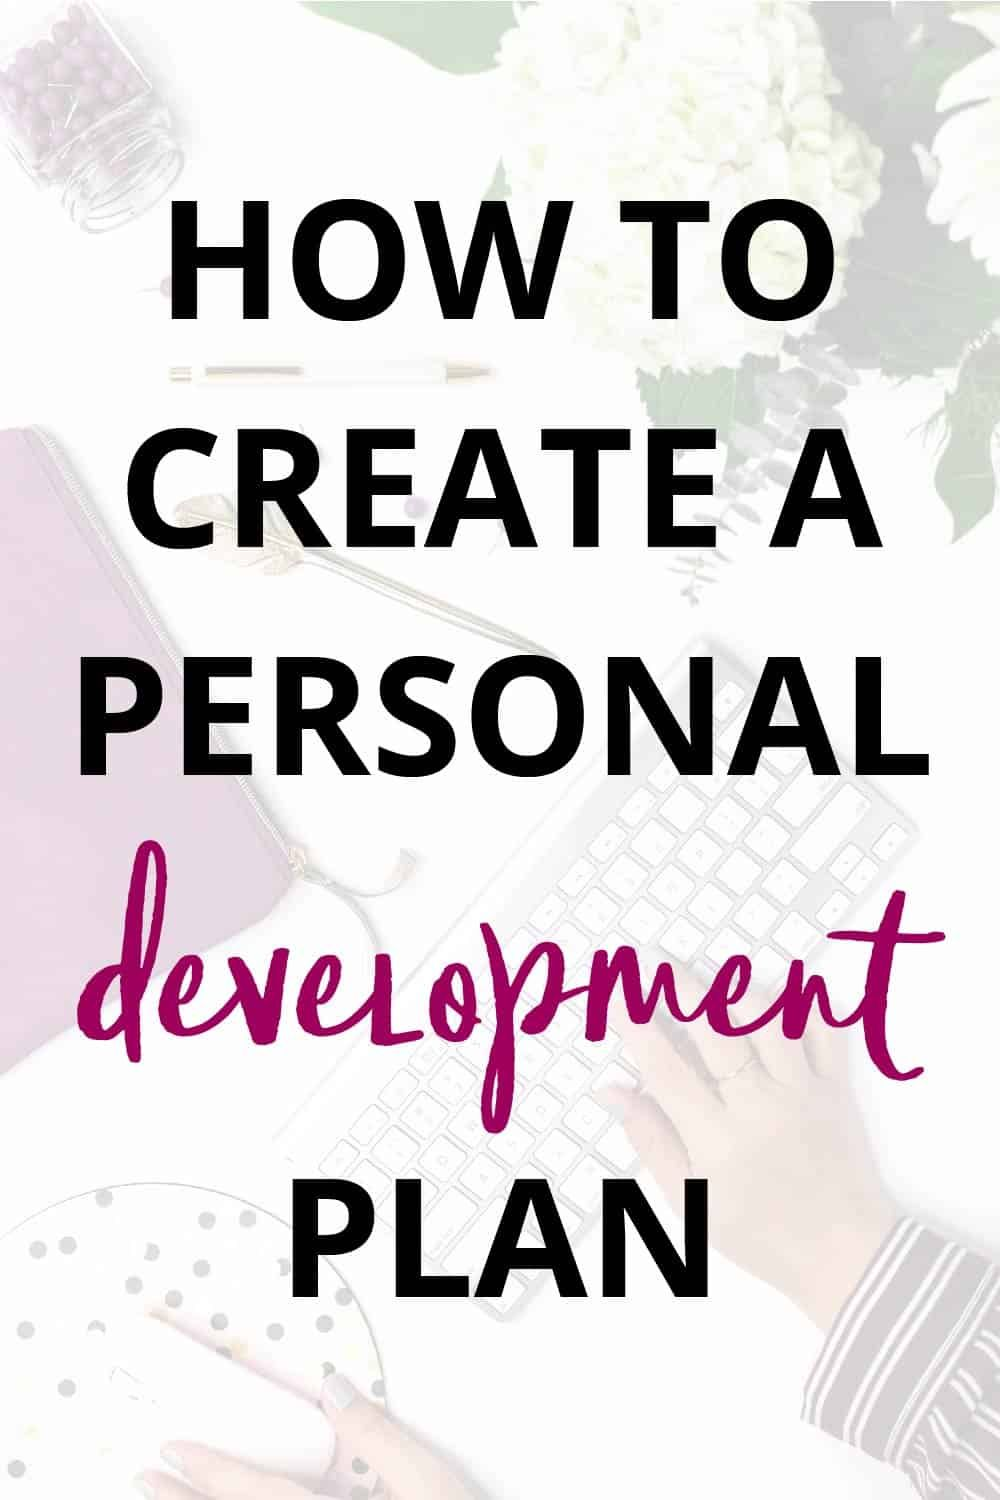 Personal development can be overwhelming when you first start out. Creating a personal growth plan can help you figure out where to focus your attention and awareness to reach your goals. In this post, I'm sharing how you can create a personal development plan to finally start reaching your goals! #personaldevelopment #selfimprovement #selfimprovementtips